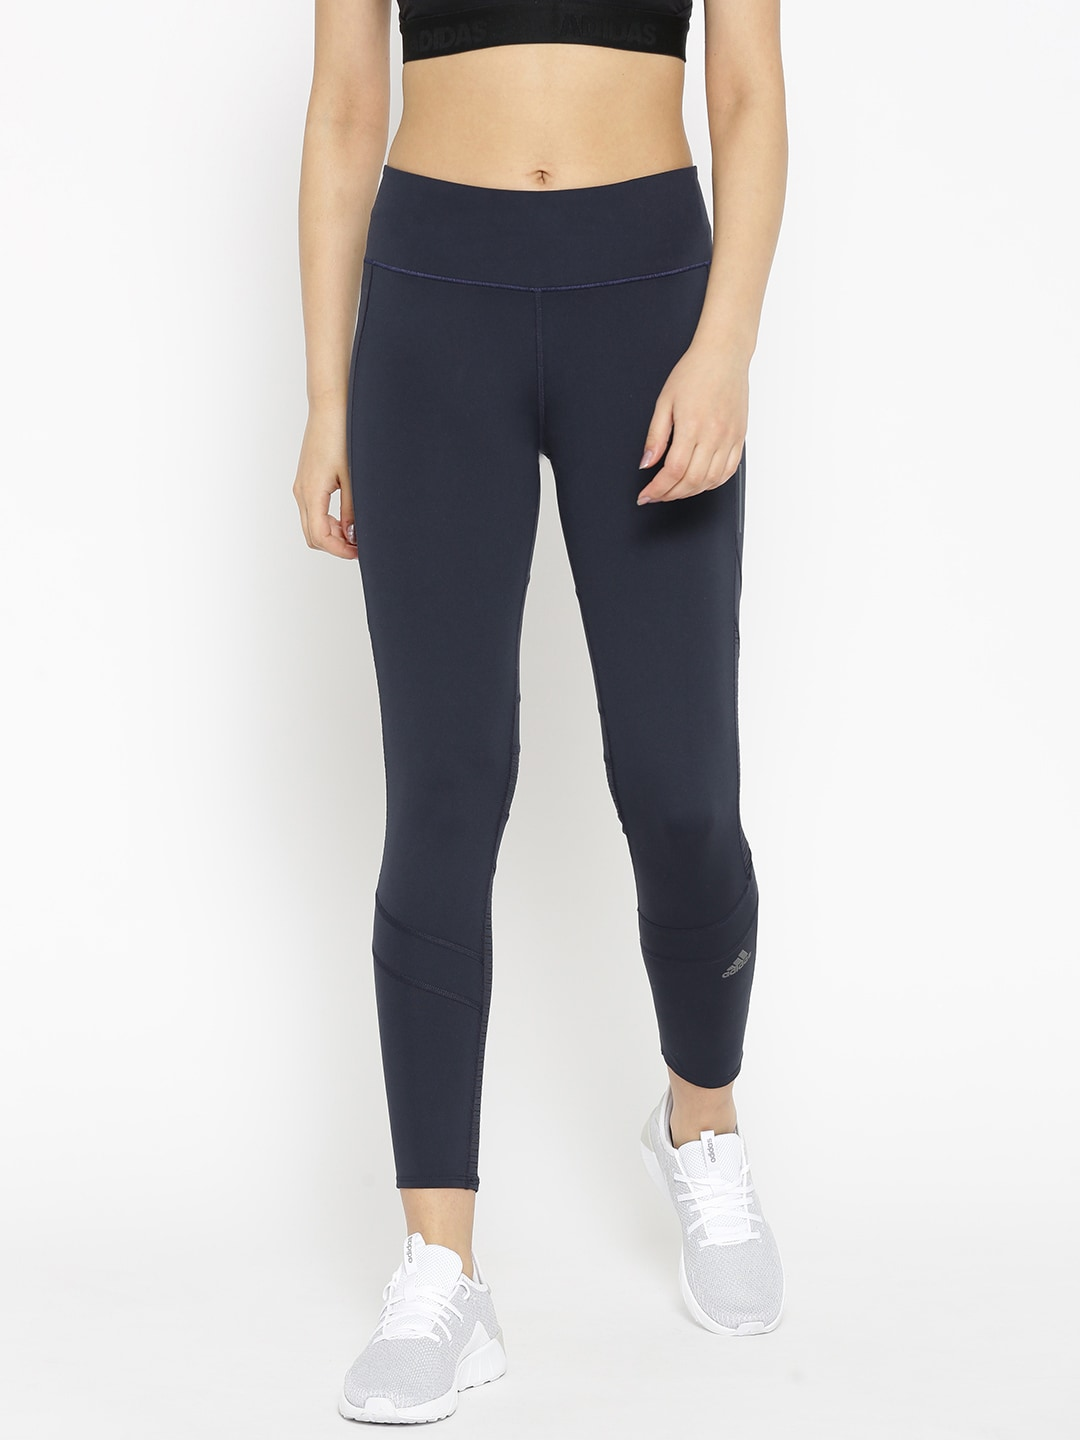 ADIDAS Women Navy Blue Solid How We Do 34 Tights